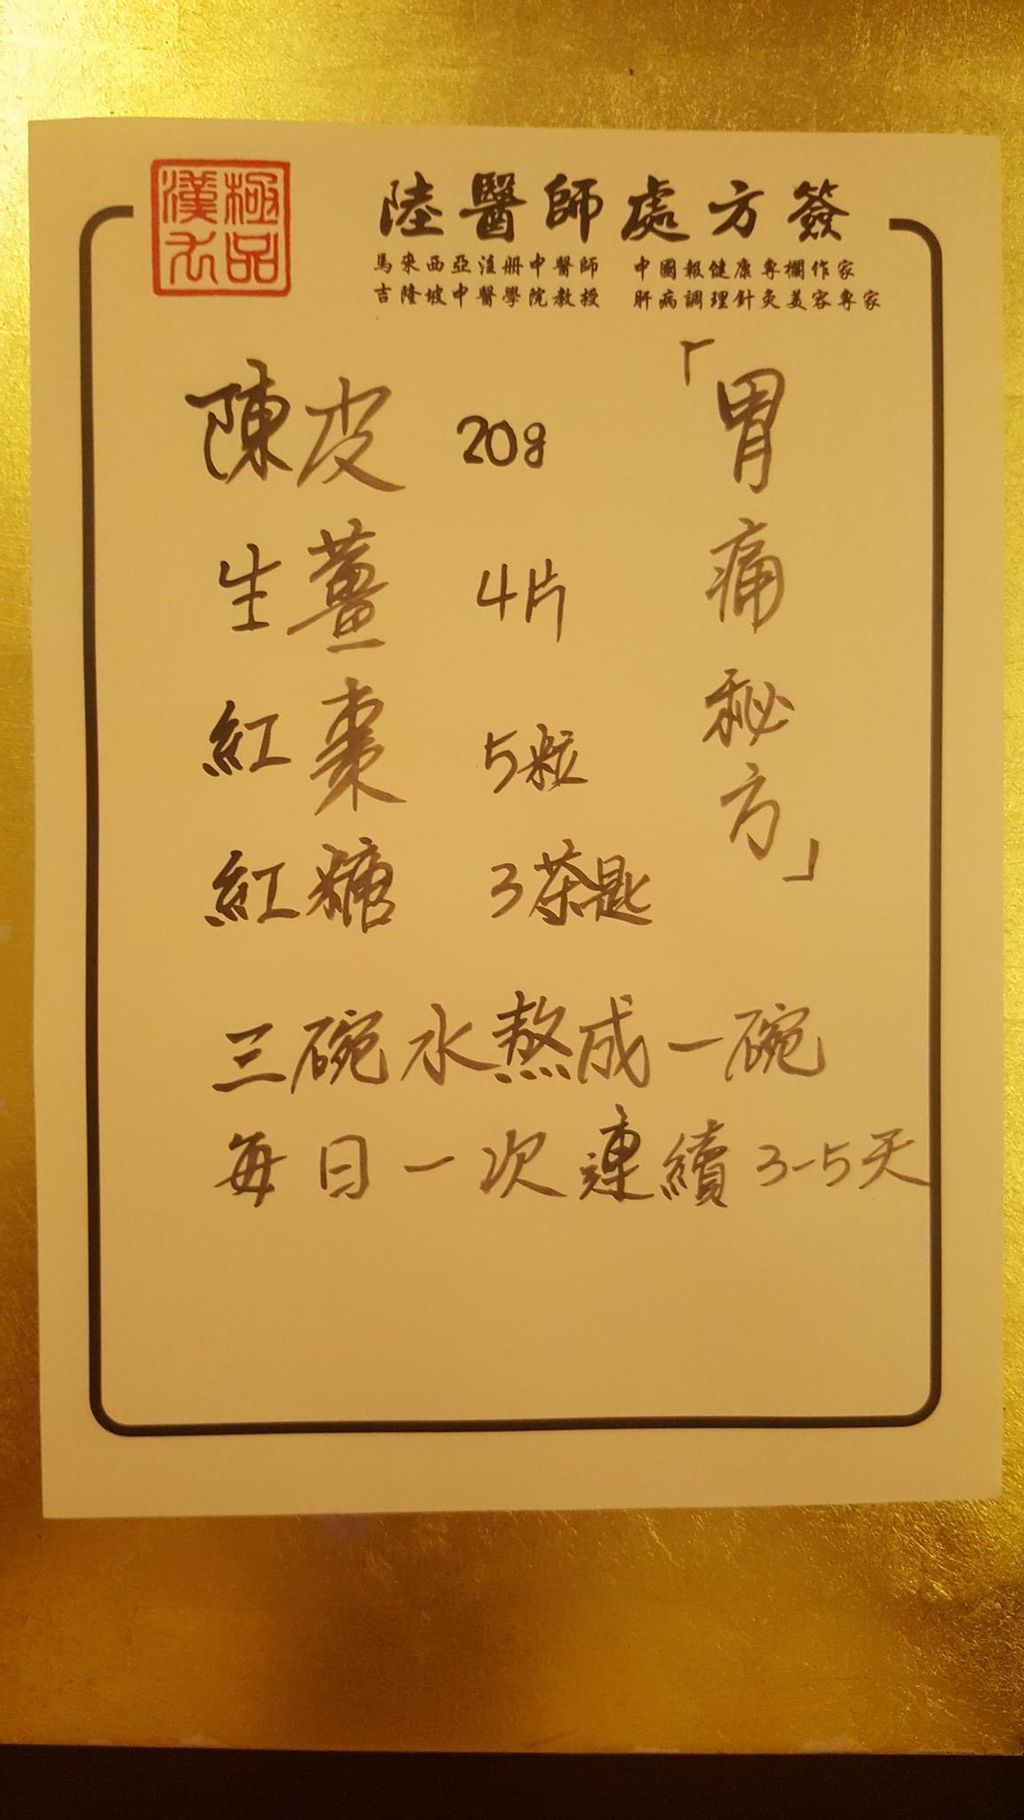 Recipe for Stomach Pain 【胃痛】